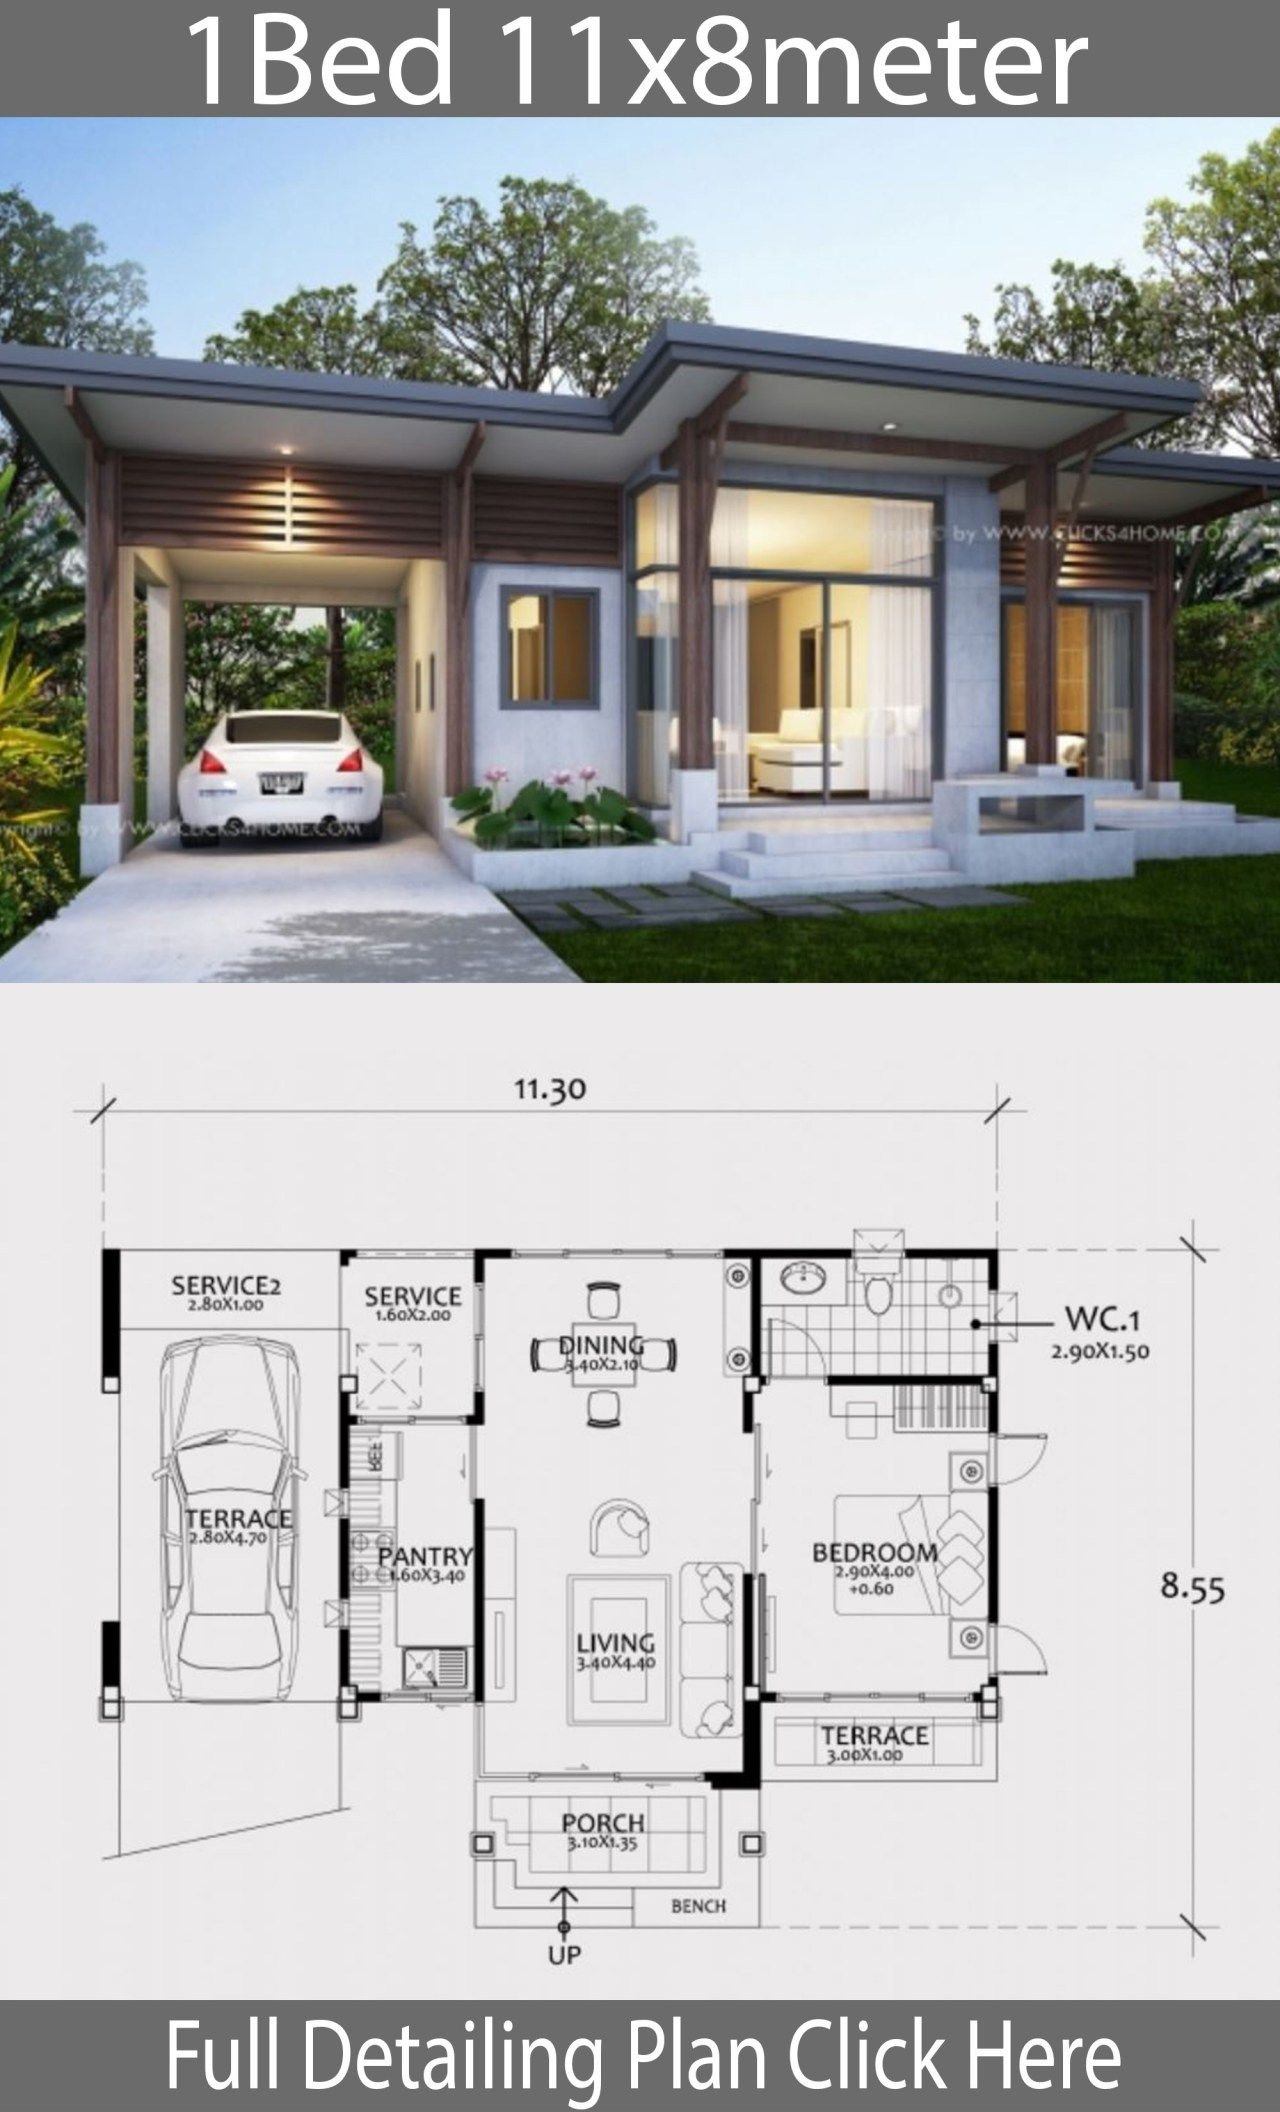 Small Modern House Designs and Floor Plans Inspirational Home Design Plan 11x8m with E Bedroom